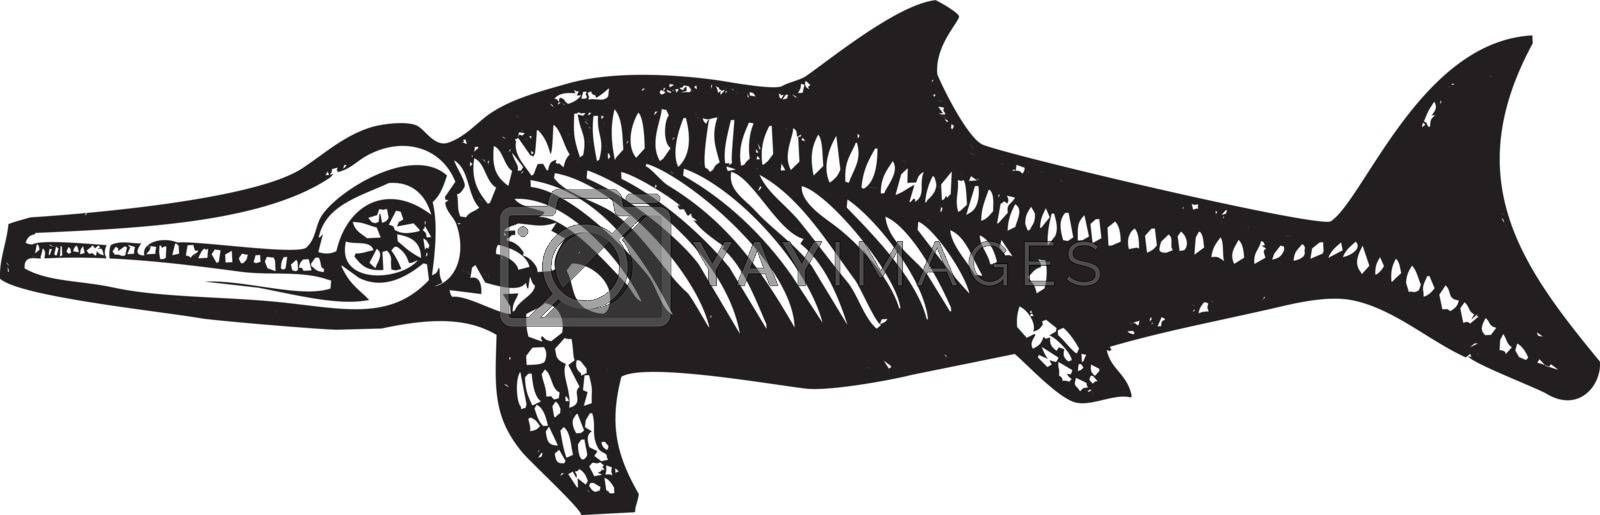 Simple rough woodcut style depictions of a Ichthyosaur Dinosaur fossil